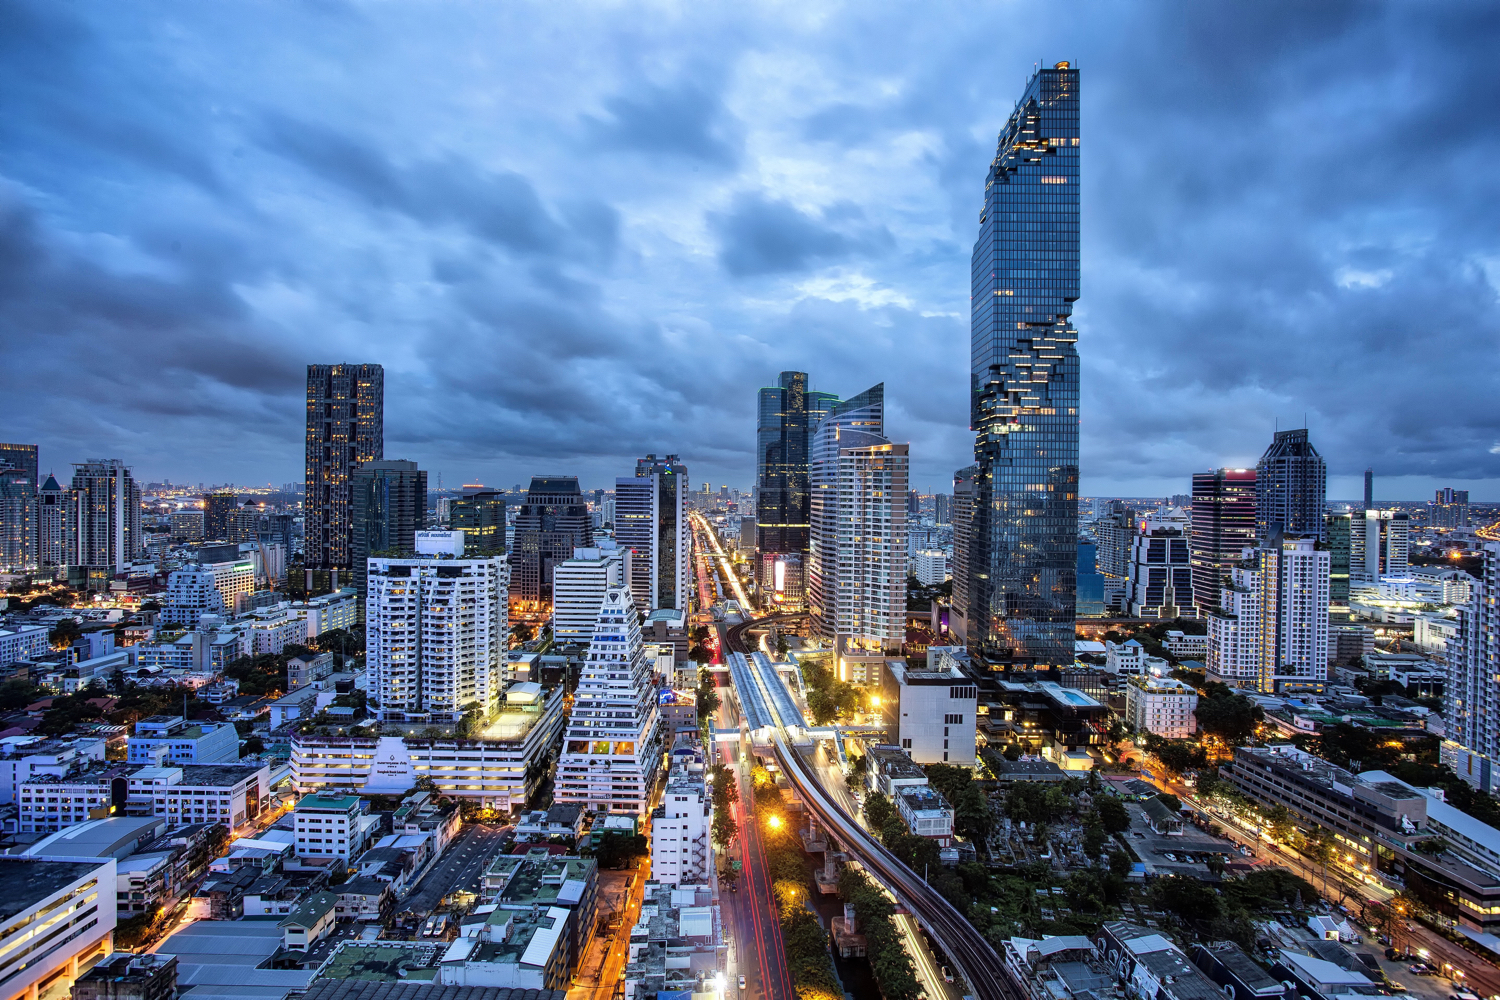 Image: This photo is of the new skyscraper in Bangkok, the Mahanakhon.